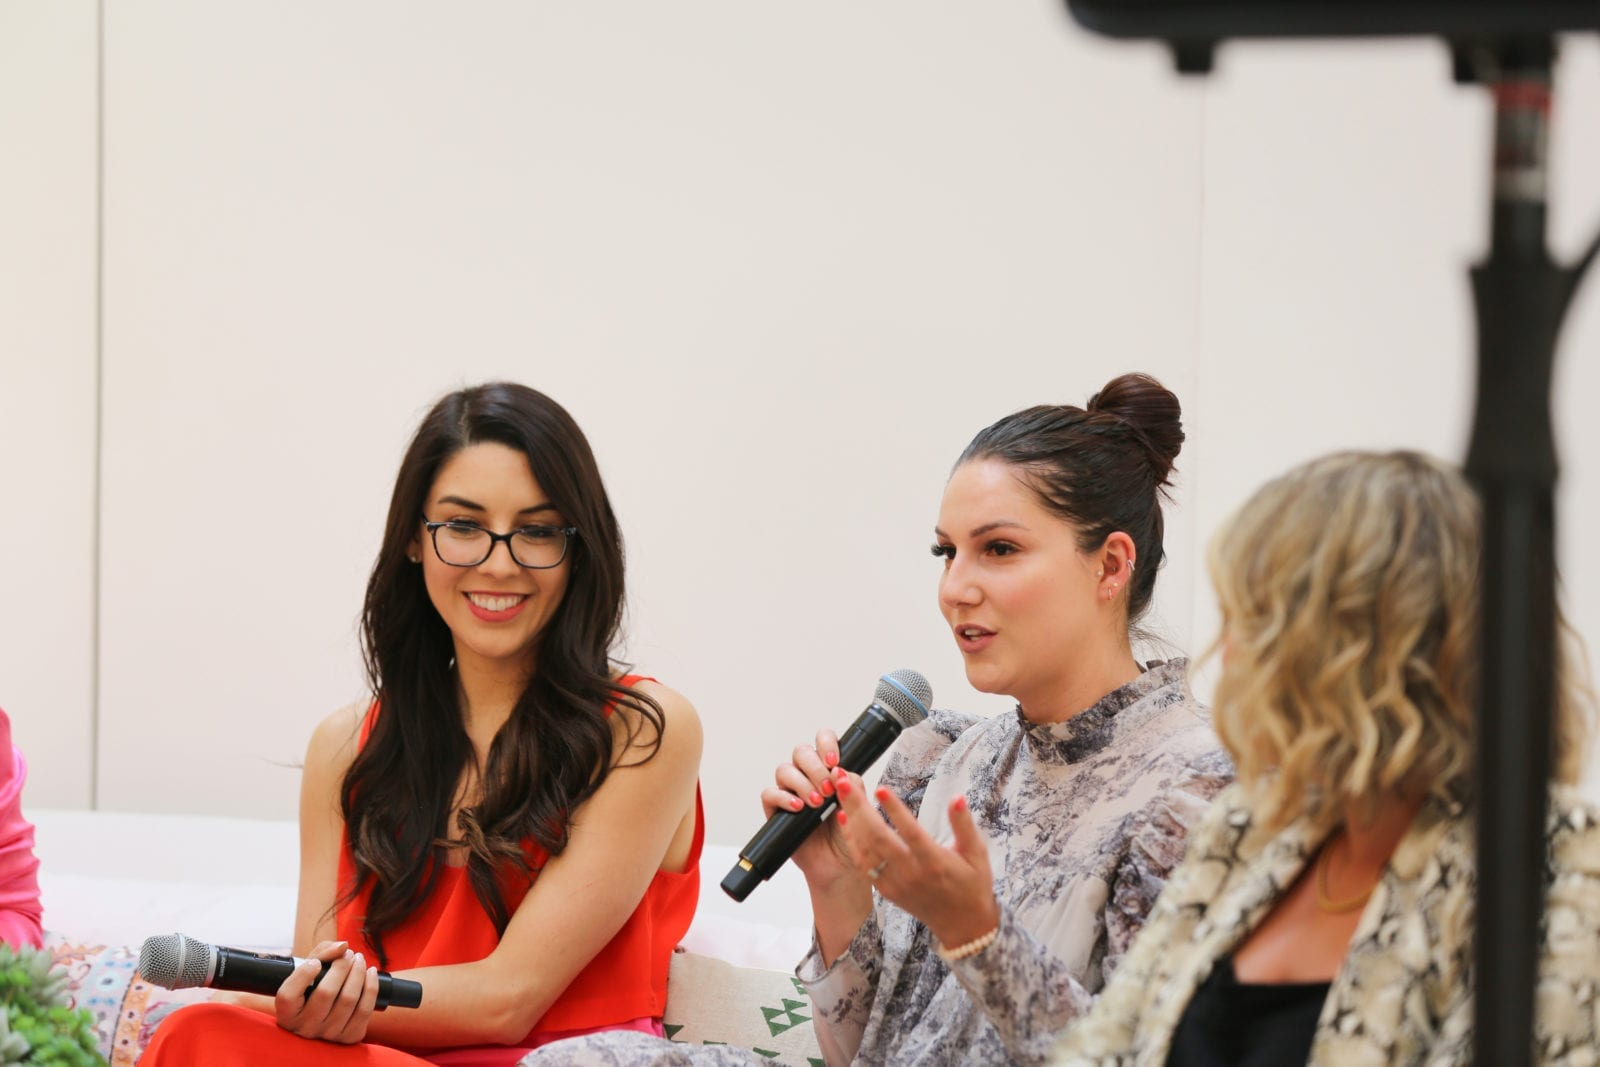 This is an image of me speaking amidst a panel at the StyleCon Summer Social in Orange County.